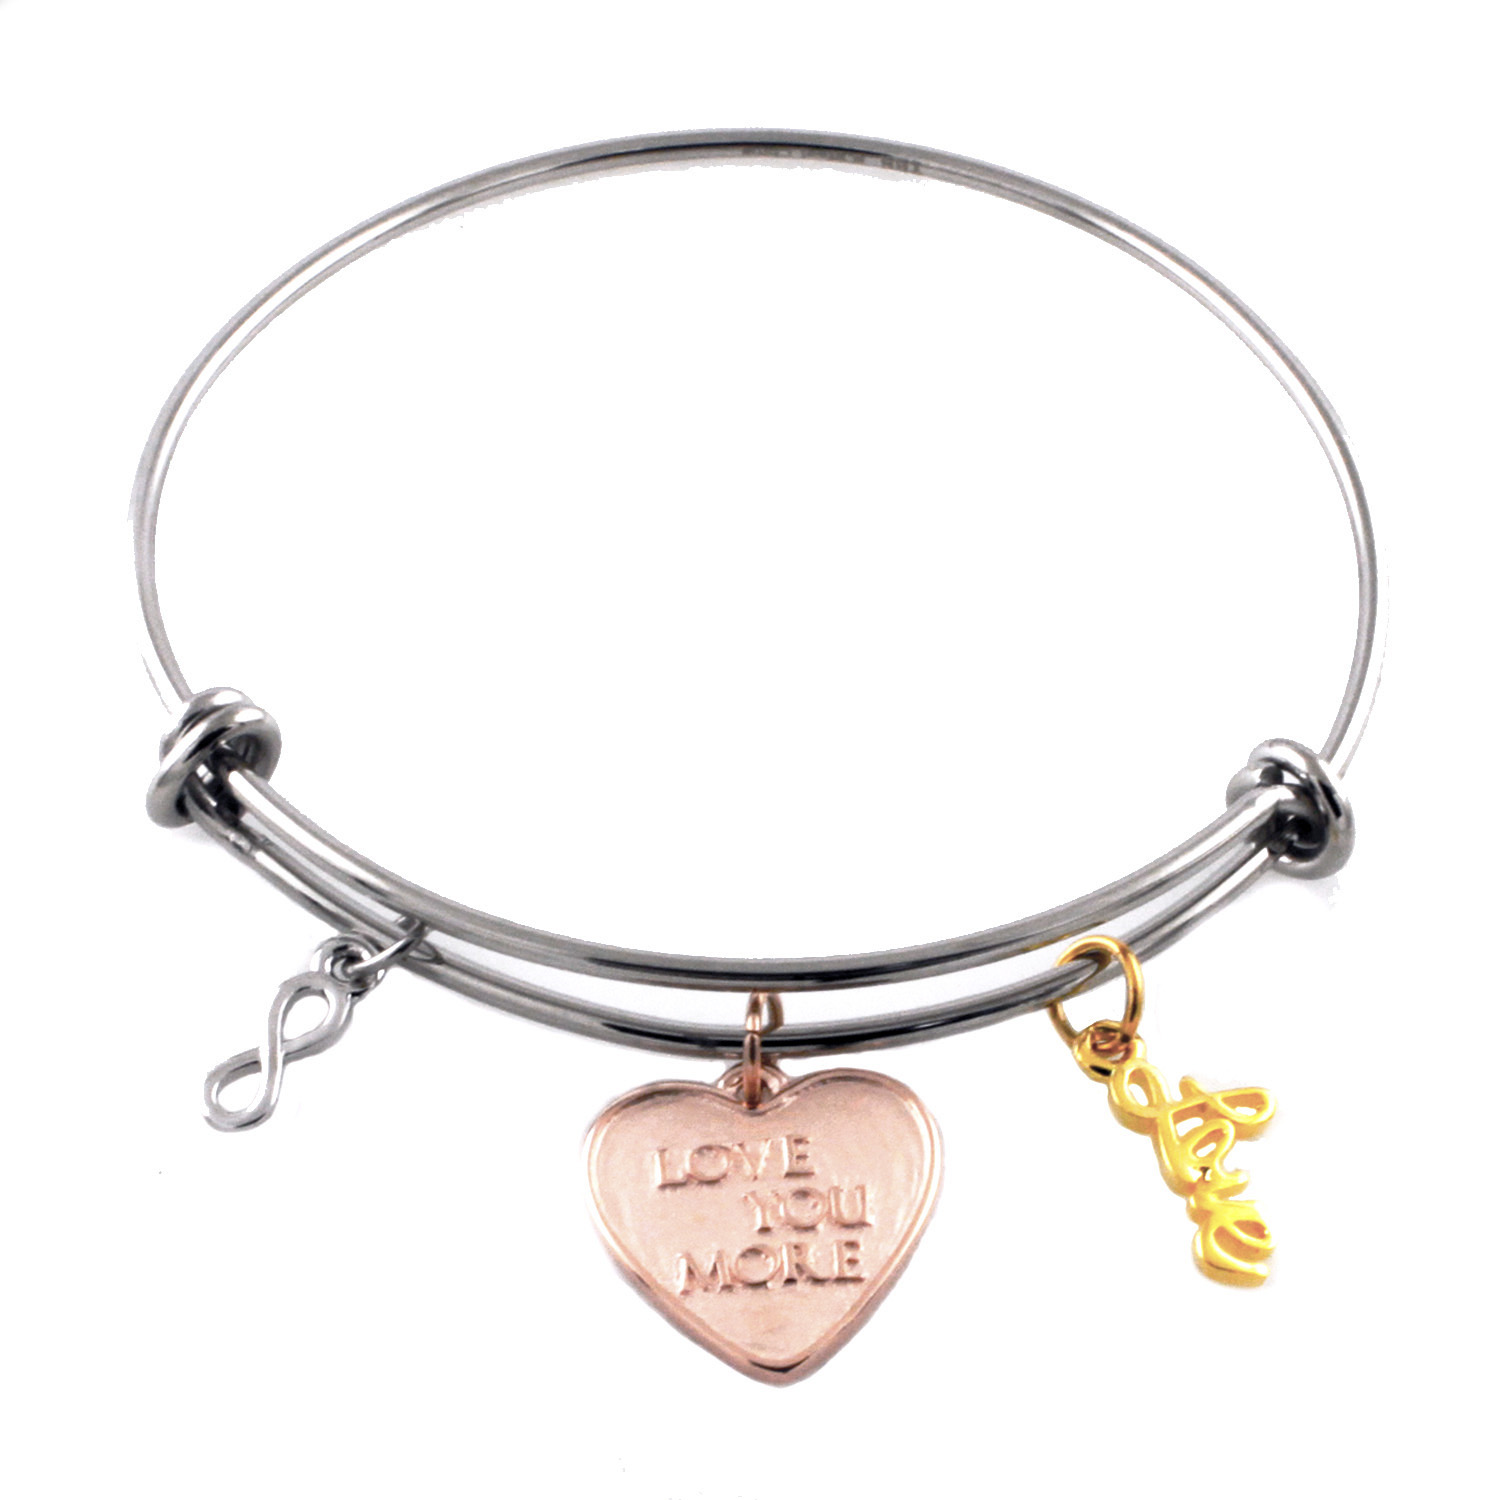 Stainless Steel Adjustable Love You More Infinity Charm BANGLE